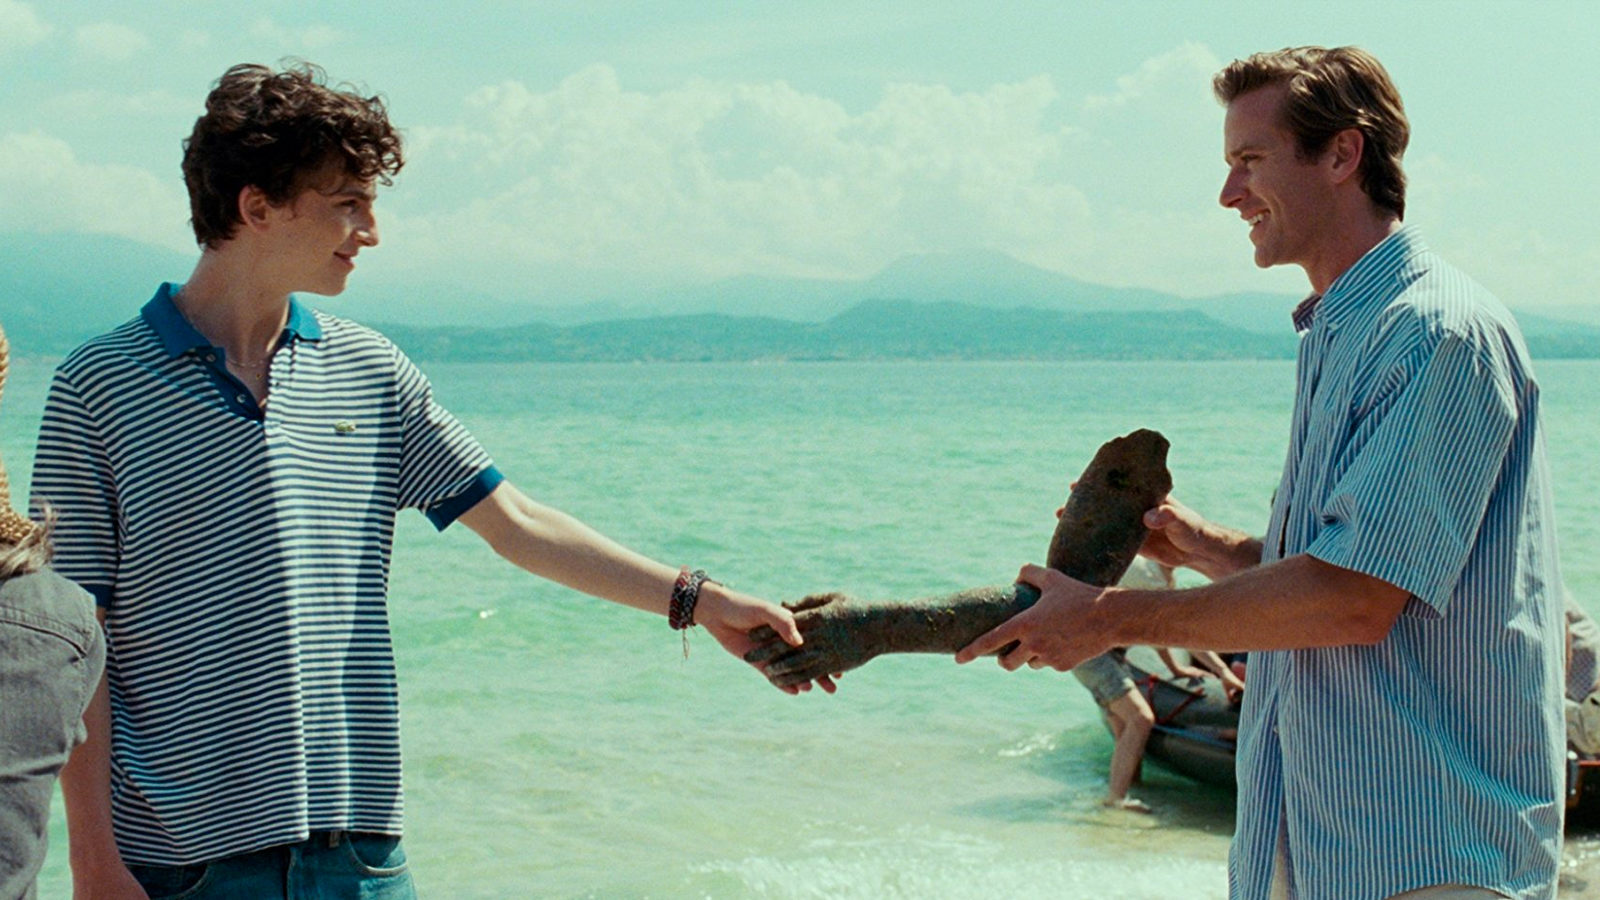 Inside The Screen The 80's Feeling In Call Me by Your Name 4